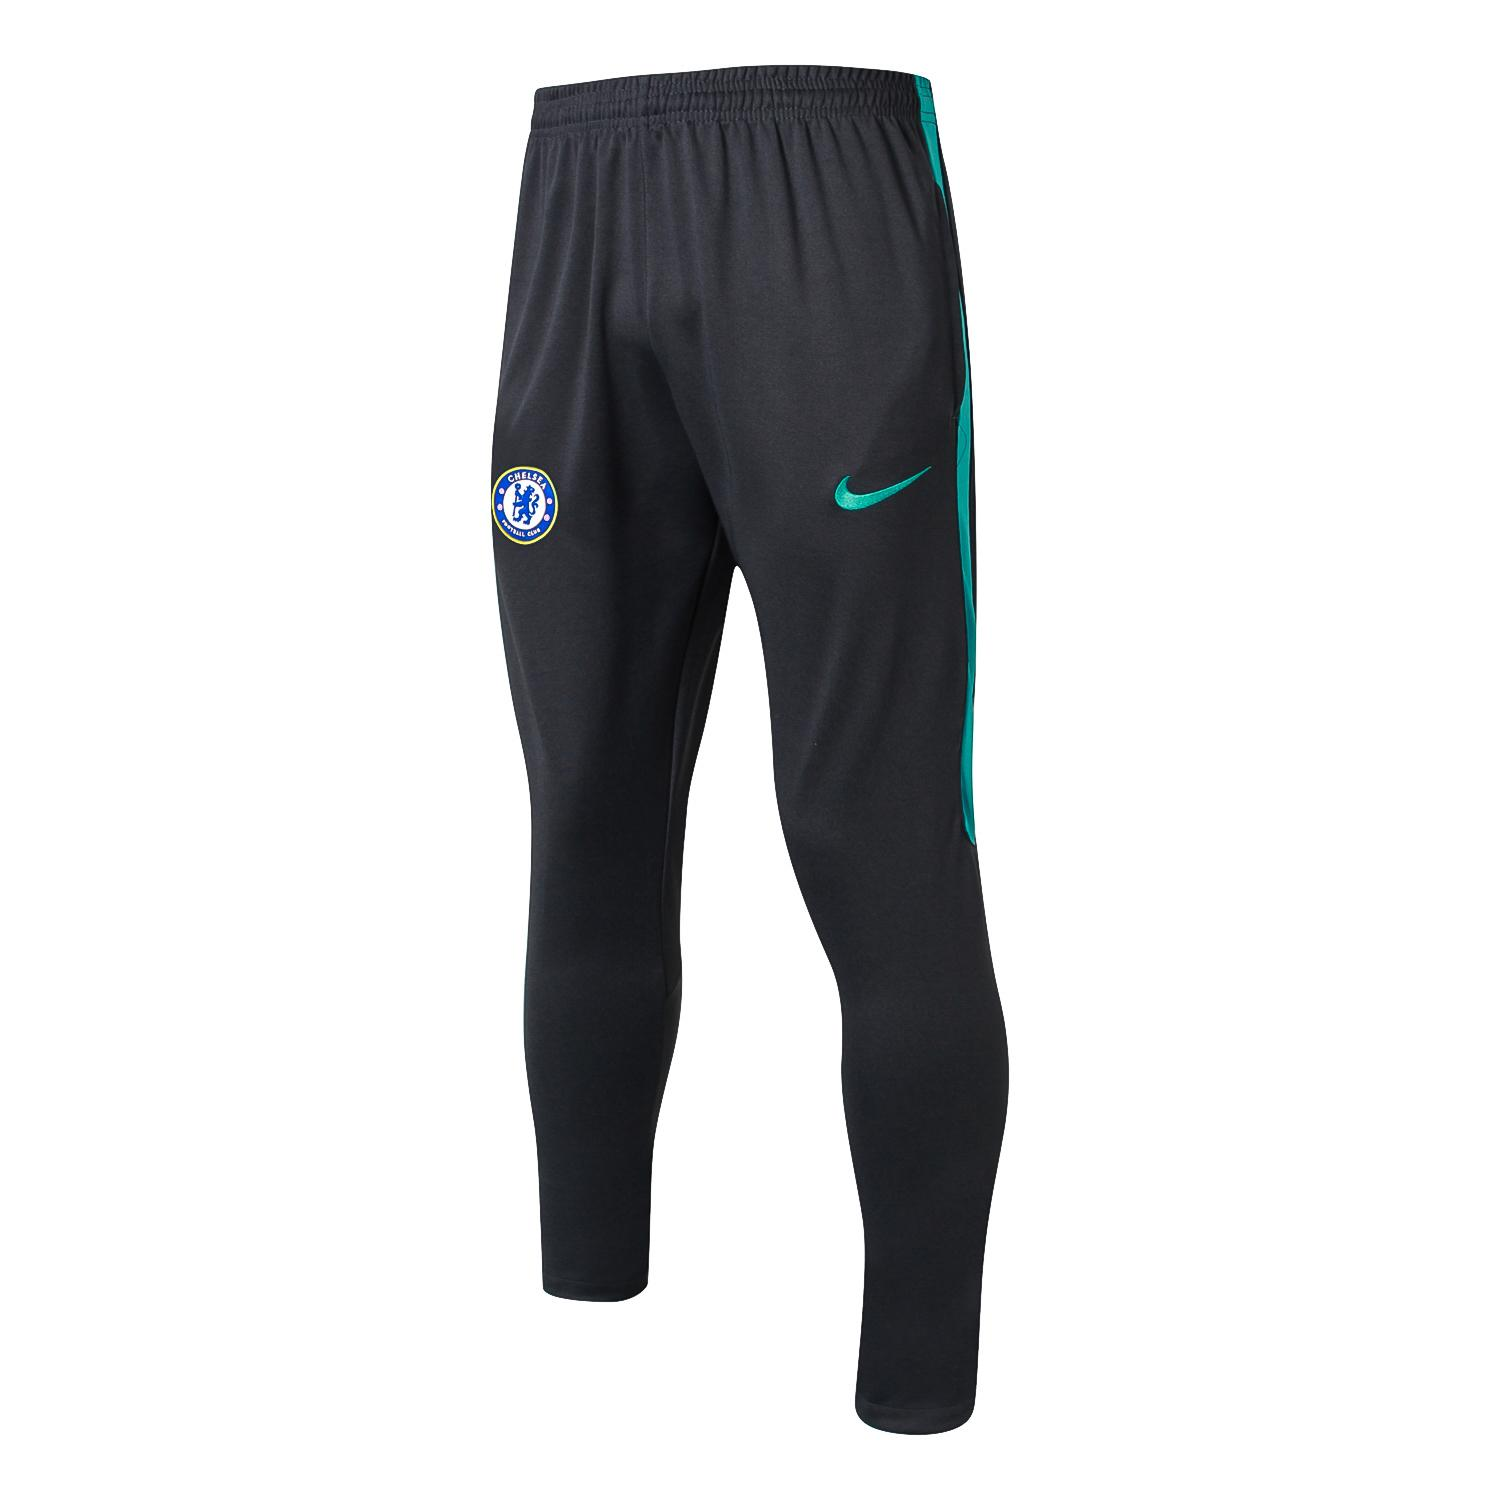 Toko Top Quality 2018 Chelseafc Training Pants Trousers Football Pants Di Tiongkok